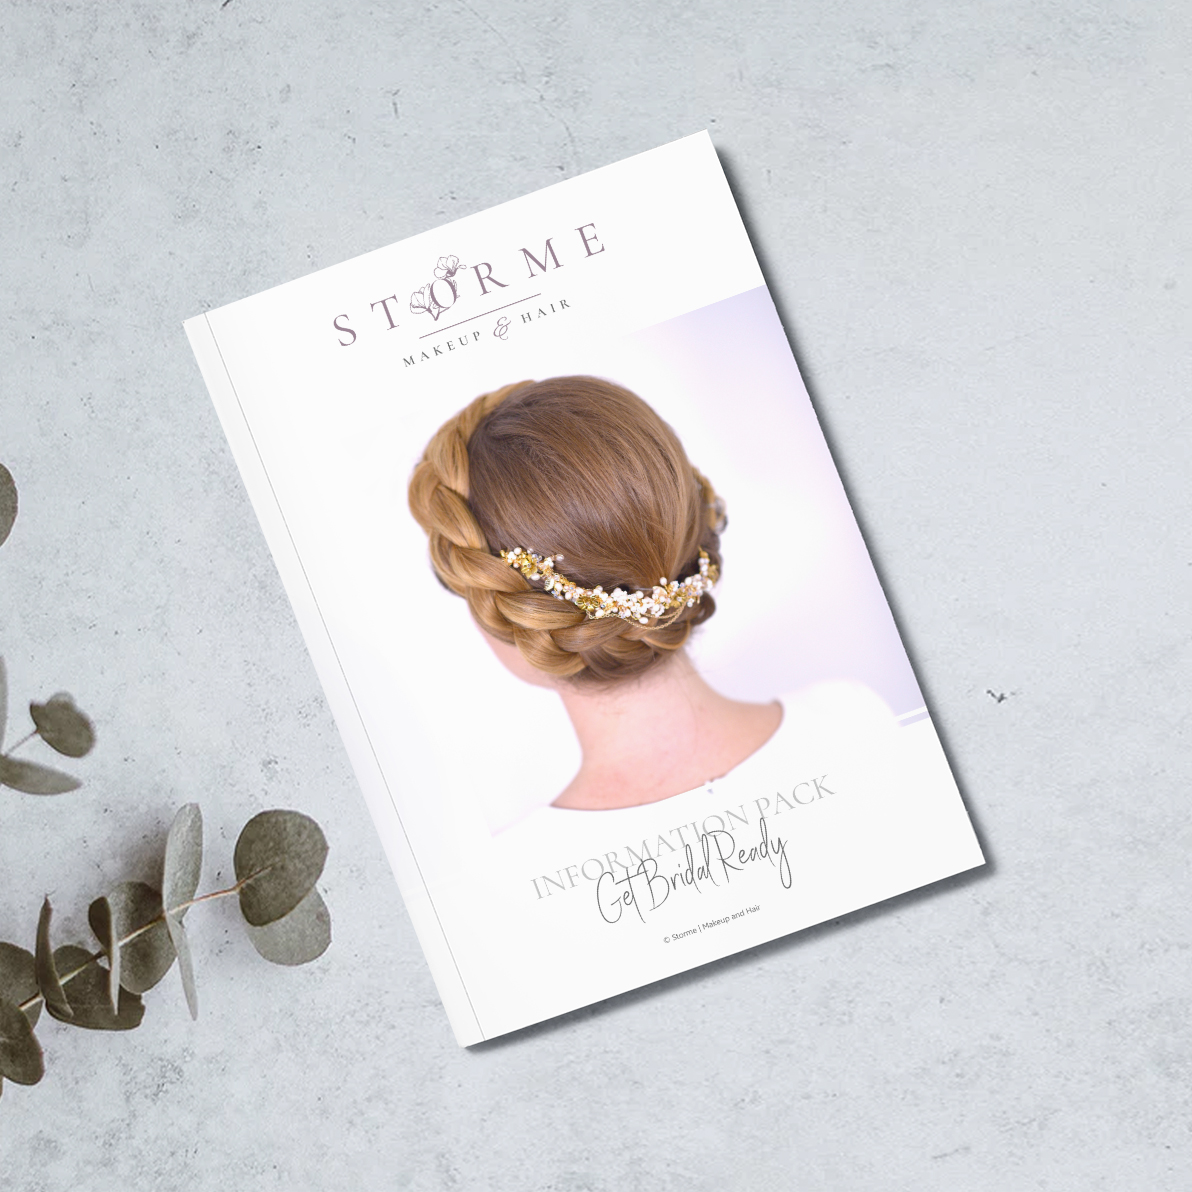 Get bridal ready Info Pack